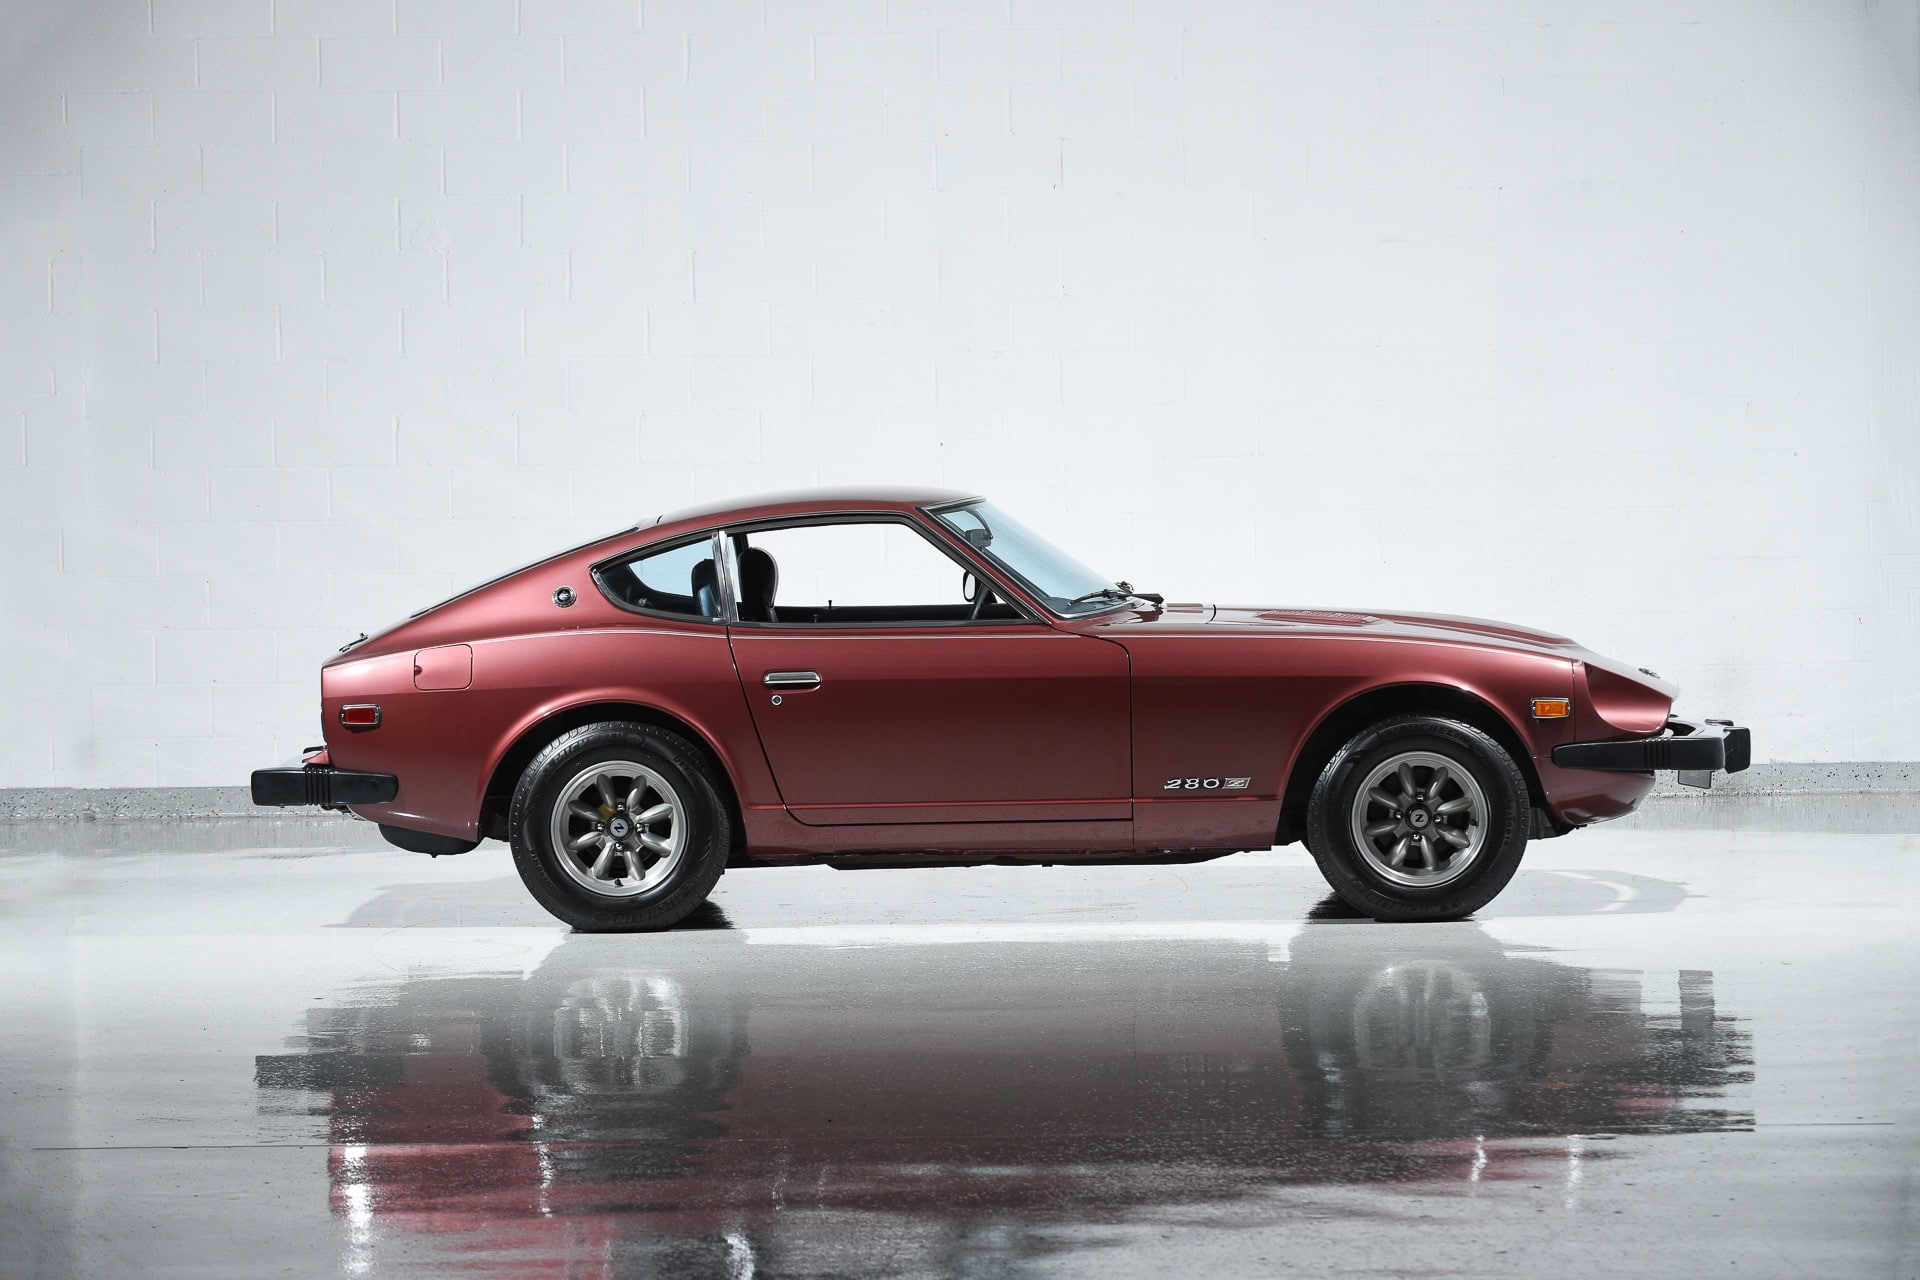 Car Auctions Ny >> Web Finds For Sale: 1978 Datsun 280Z | Second Daily Classics